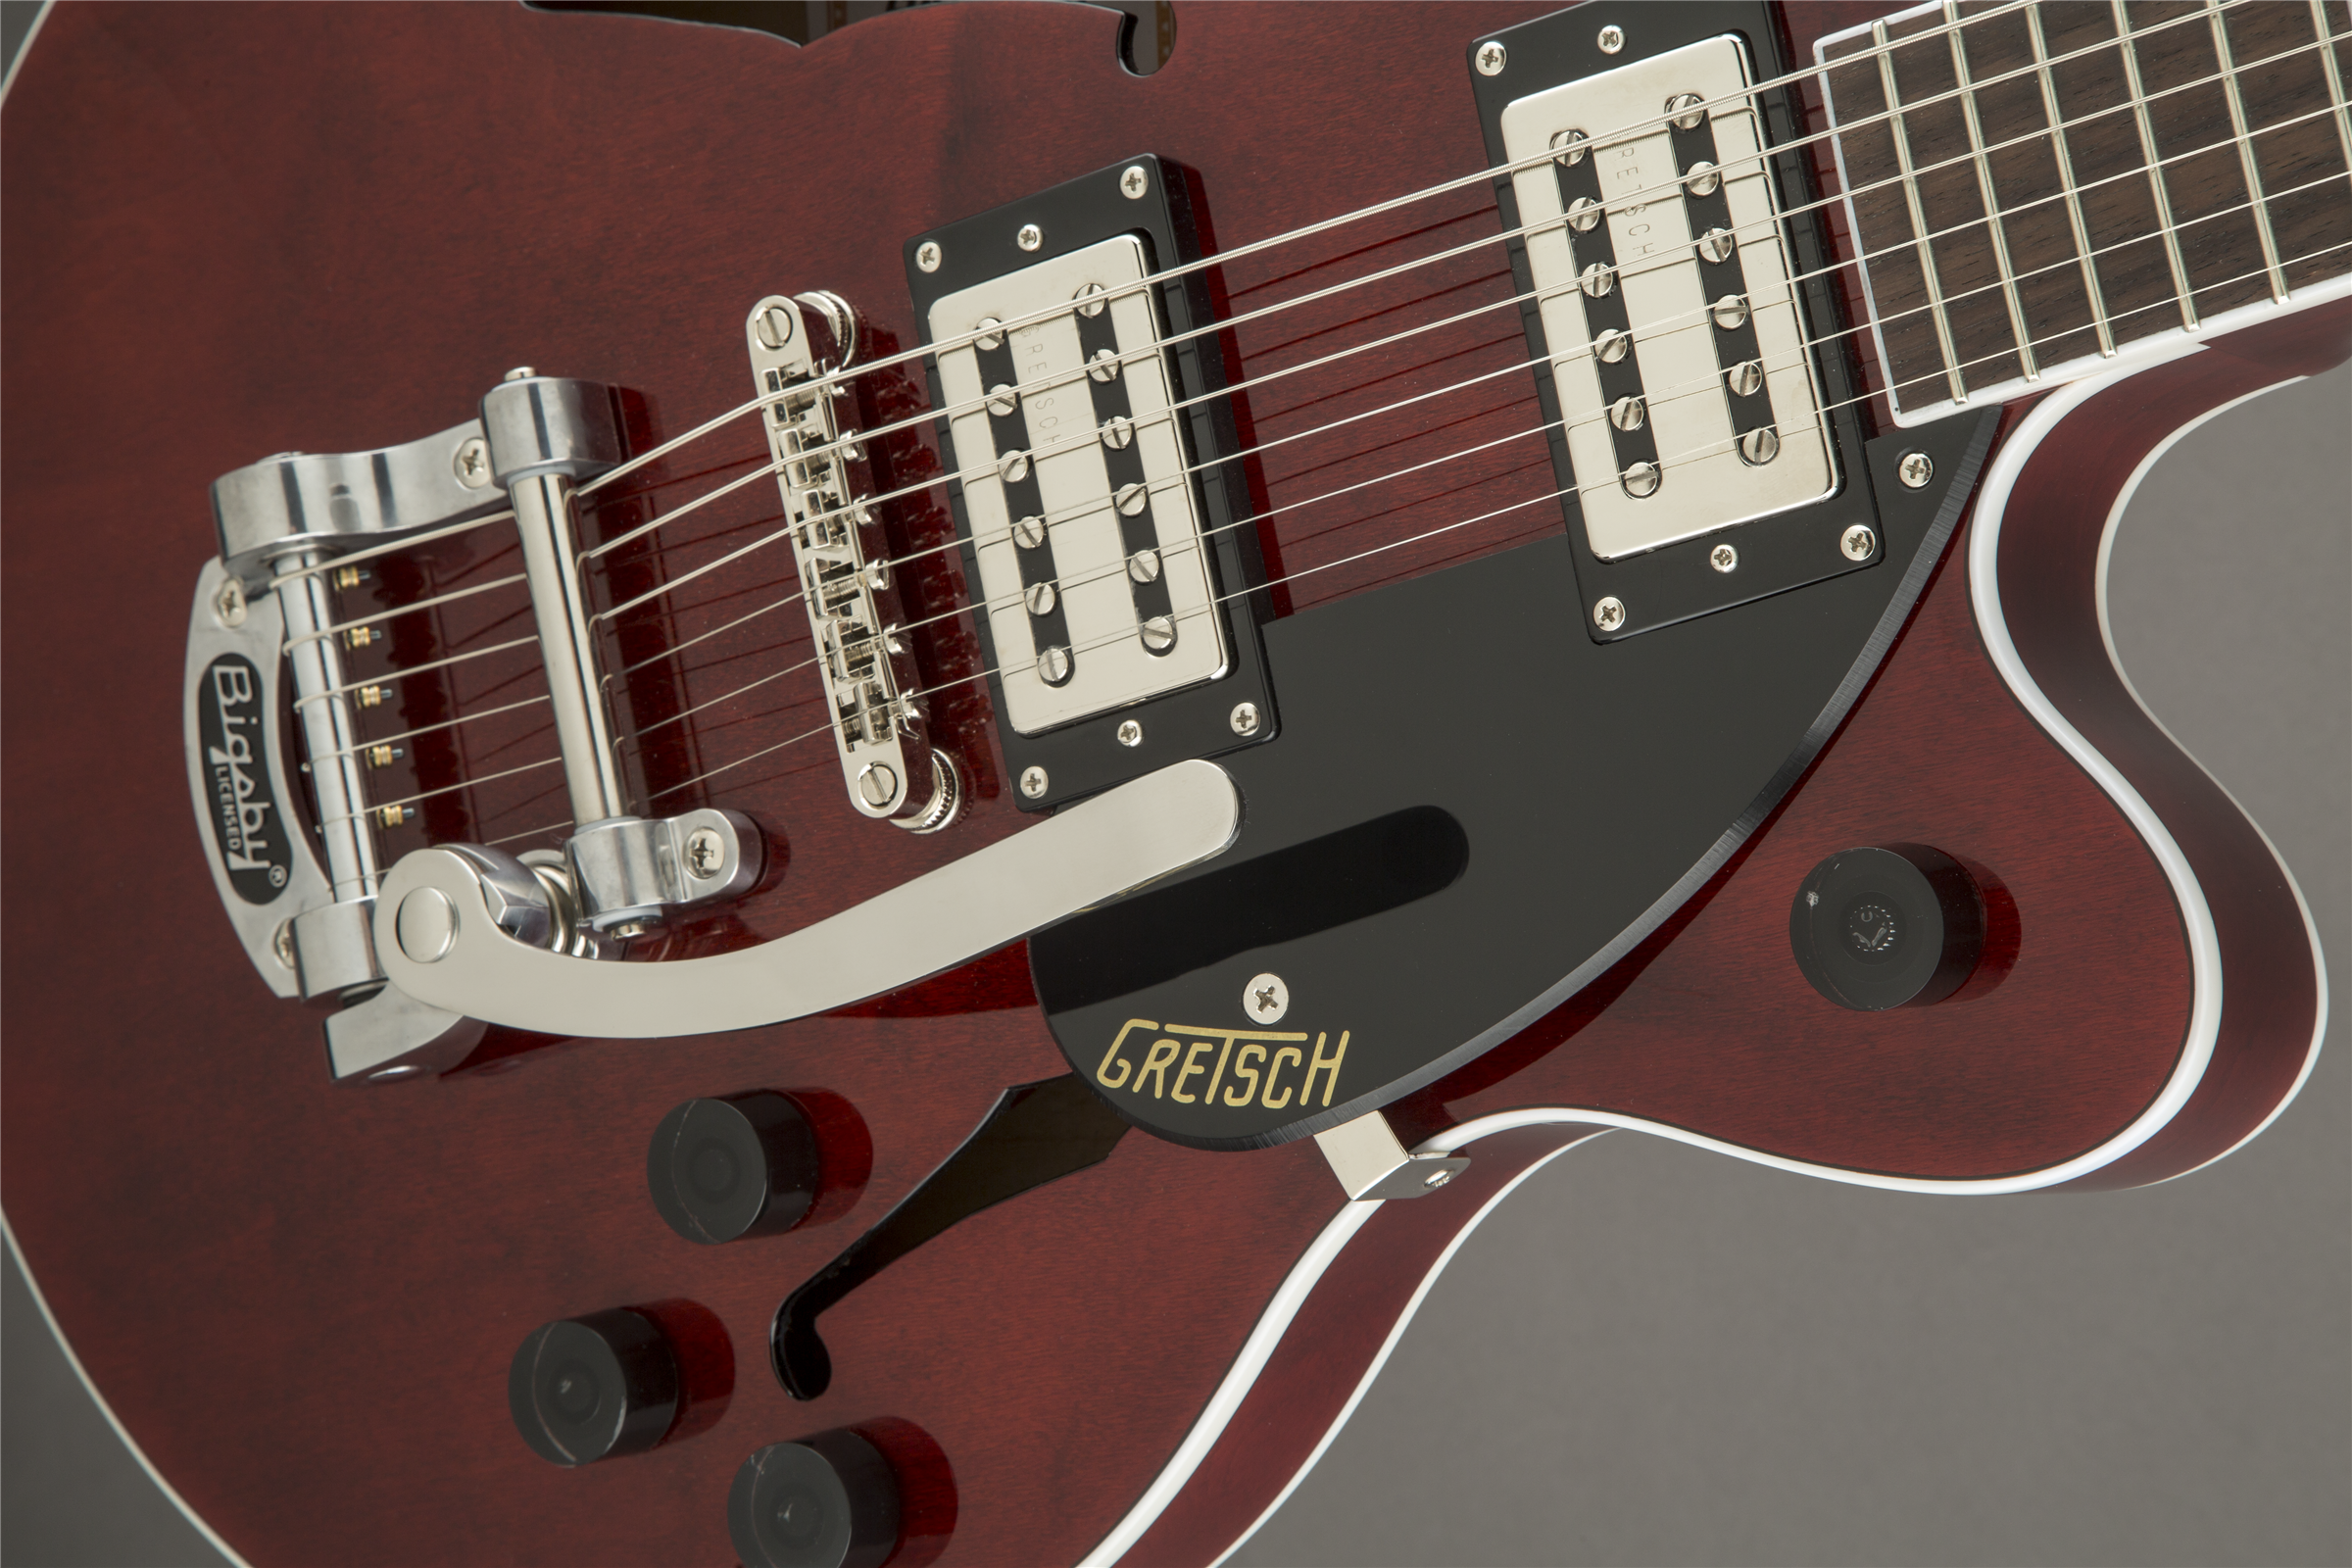 Gretsch G2655t Guitar Wiring Wire Center Cort Diagrams Block Streamliner Jr With Bigsby Rh Gretschguitars Com Rickenbacker